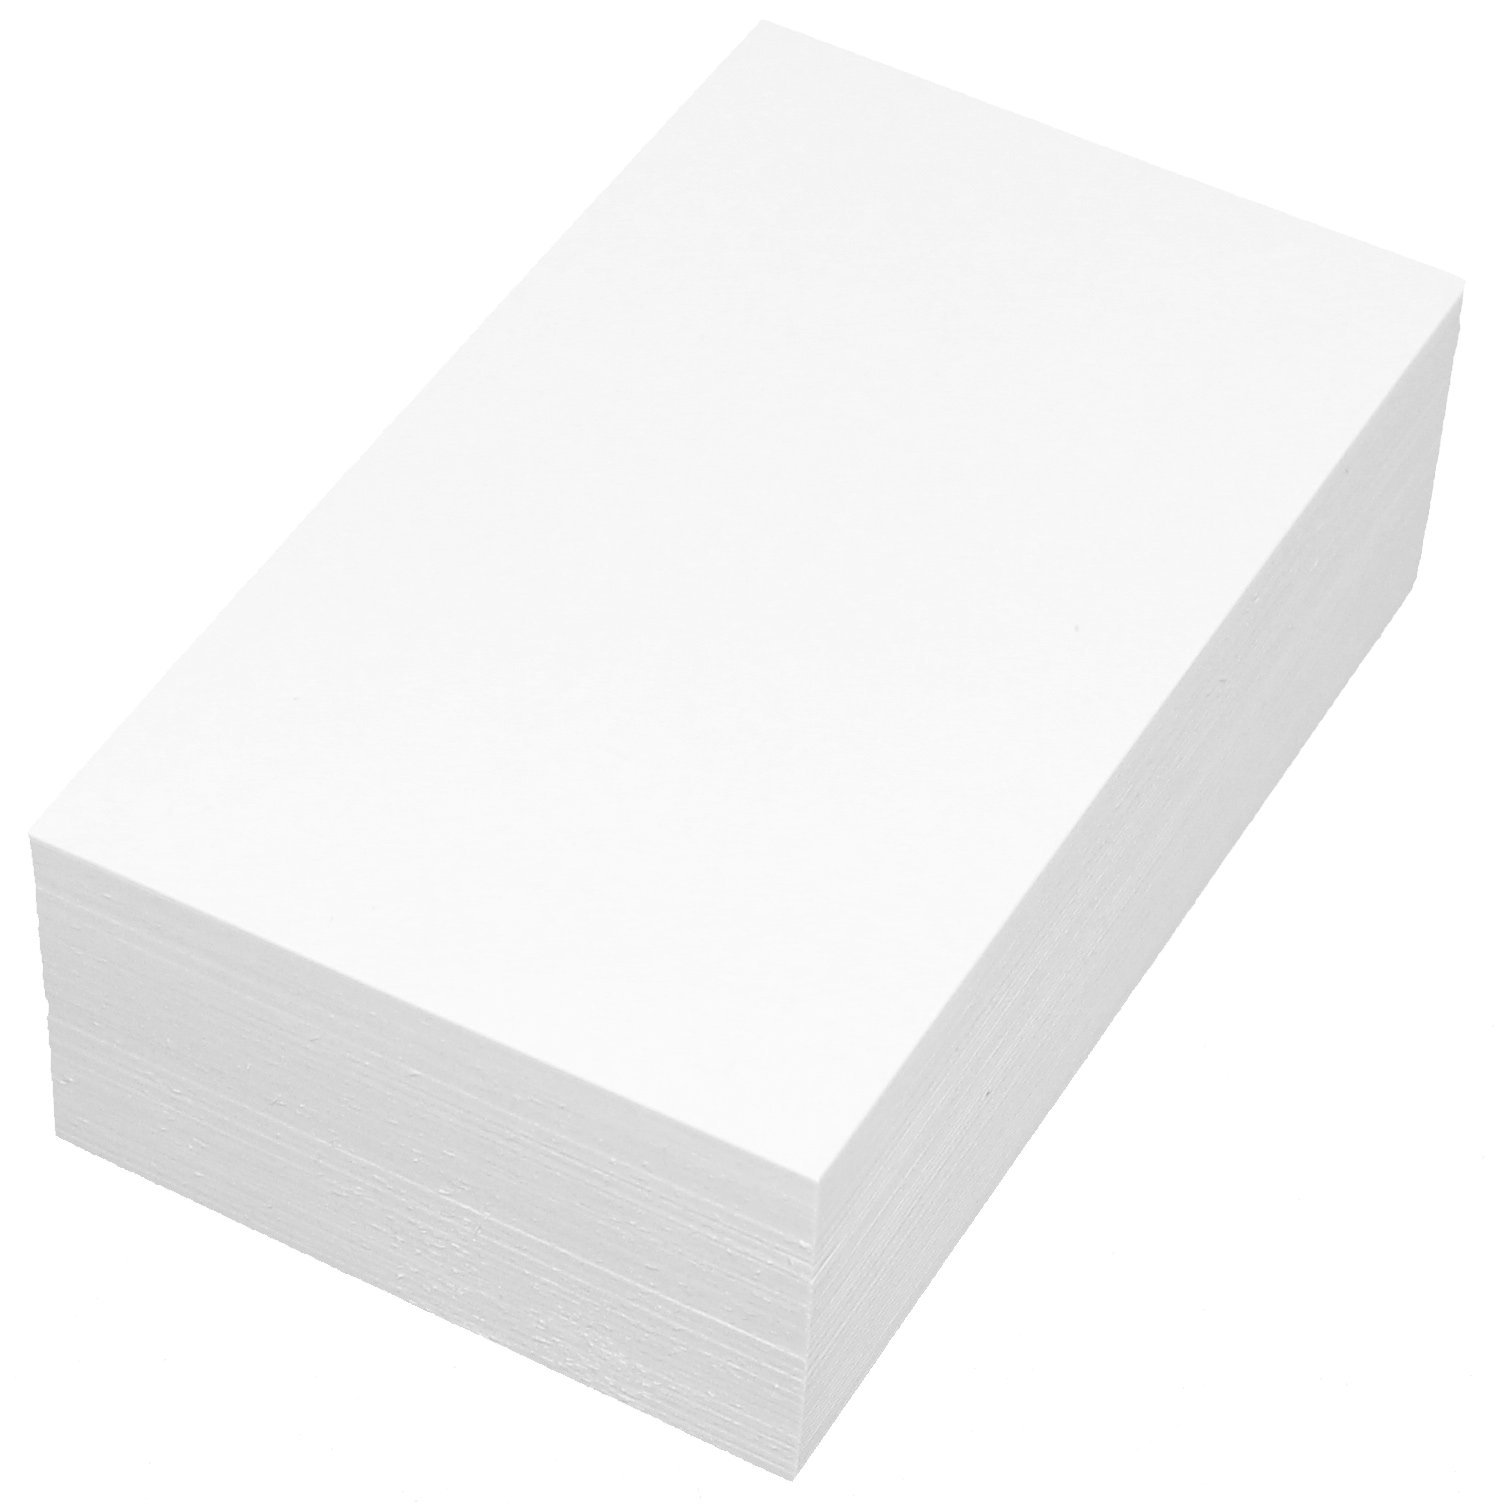 Debra Dale Designs Premium Blank Unruled White 20 Point Card Stock. Extra Thick - Super Heavy 3'' x 5'' Index Cards. 1 Package of 100. The Thickest Currently Available on Amazon.